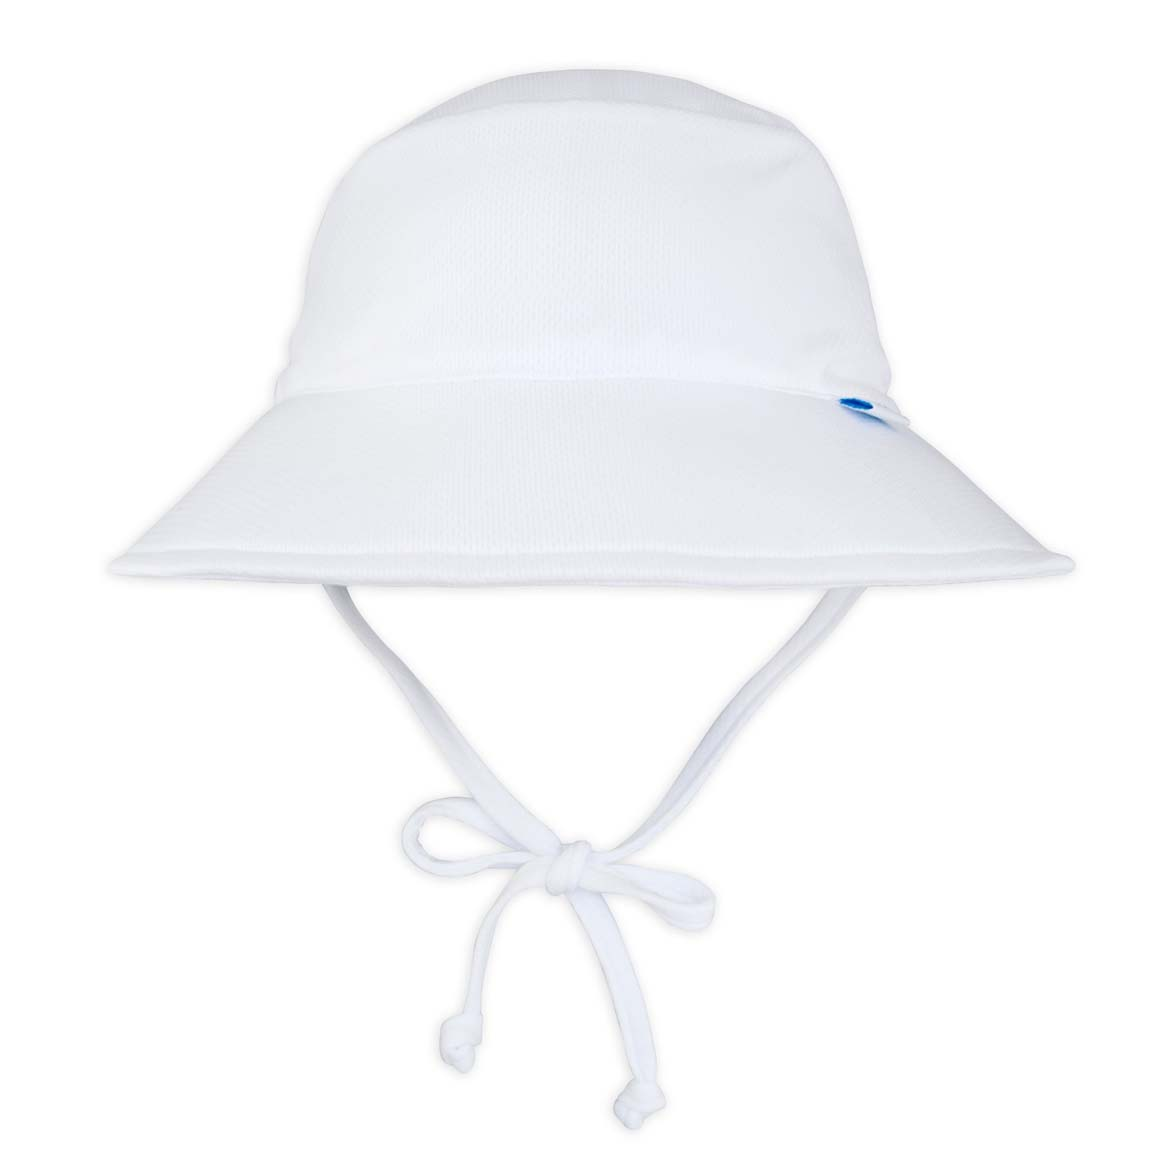 Breathable Bucket Sun Protection Hat-White | Trada Marketplace